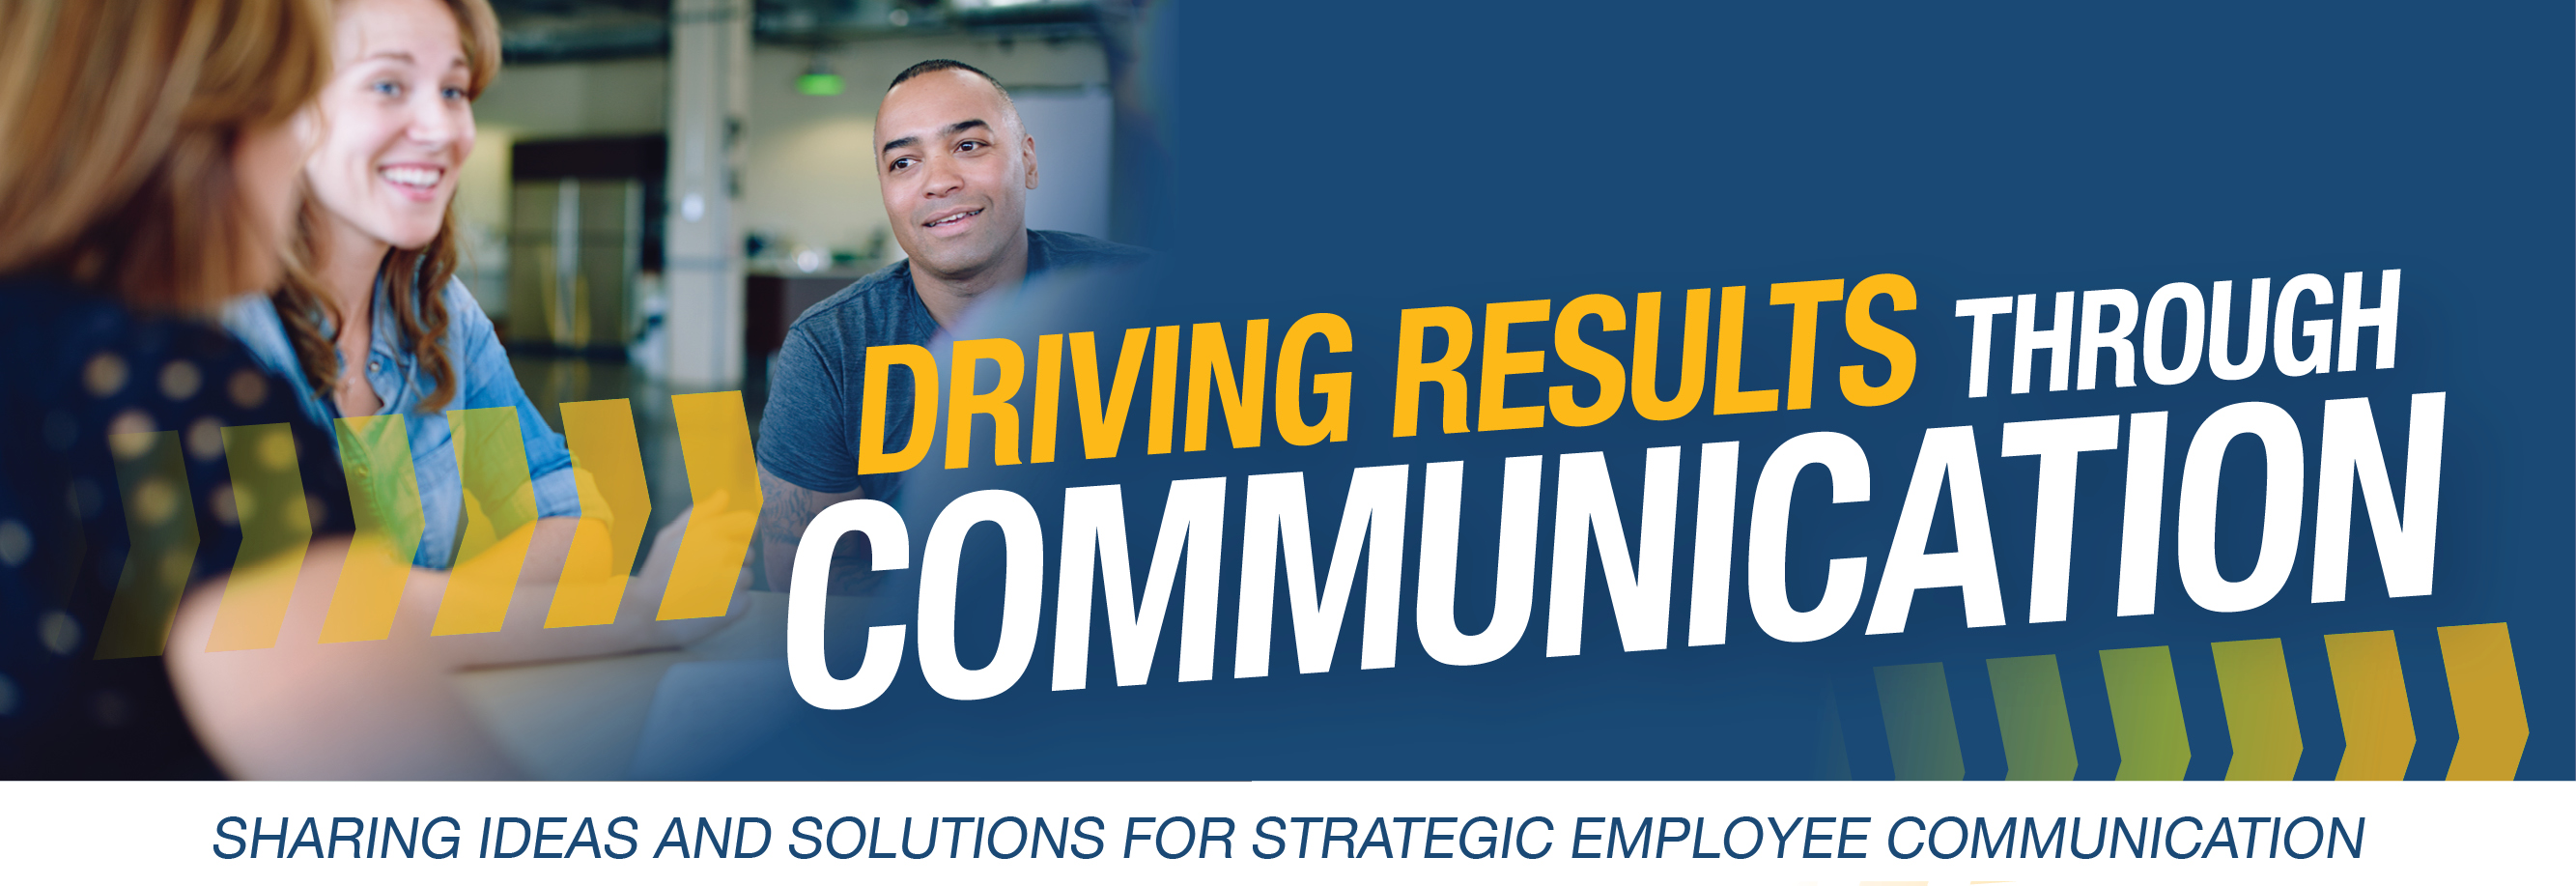 Tip #8 Driving Results Through Communication